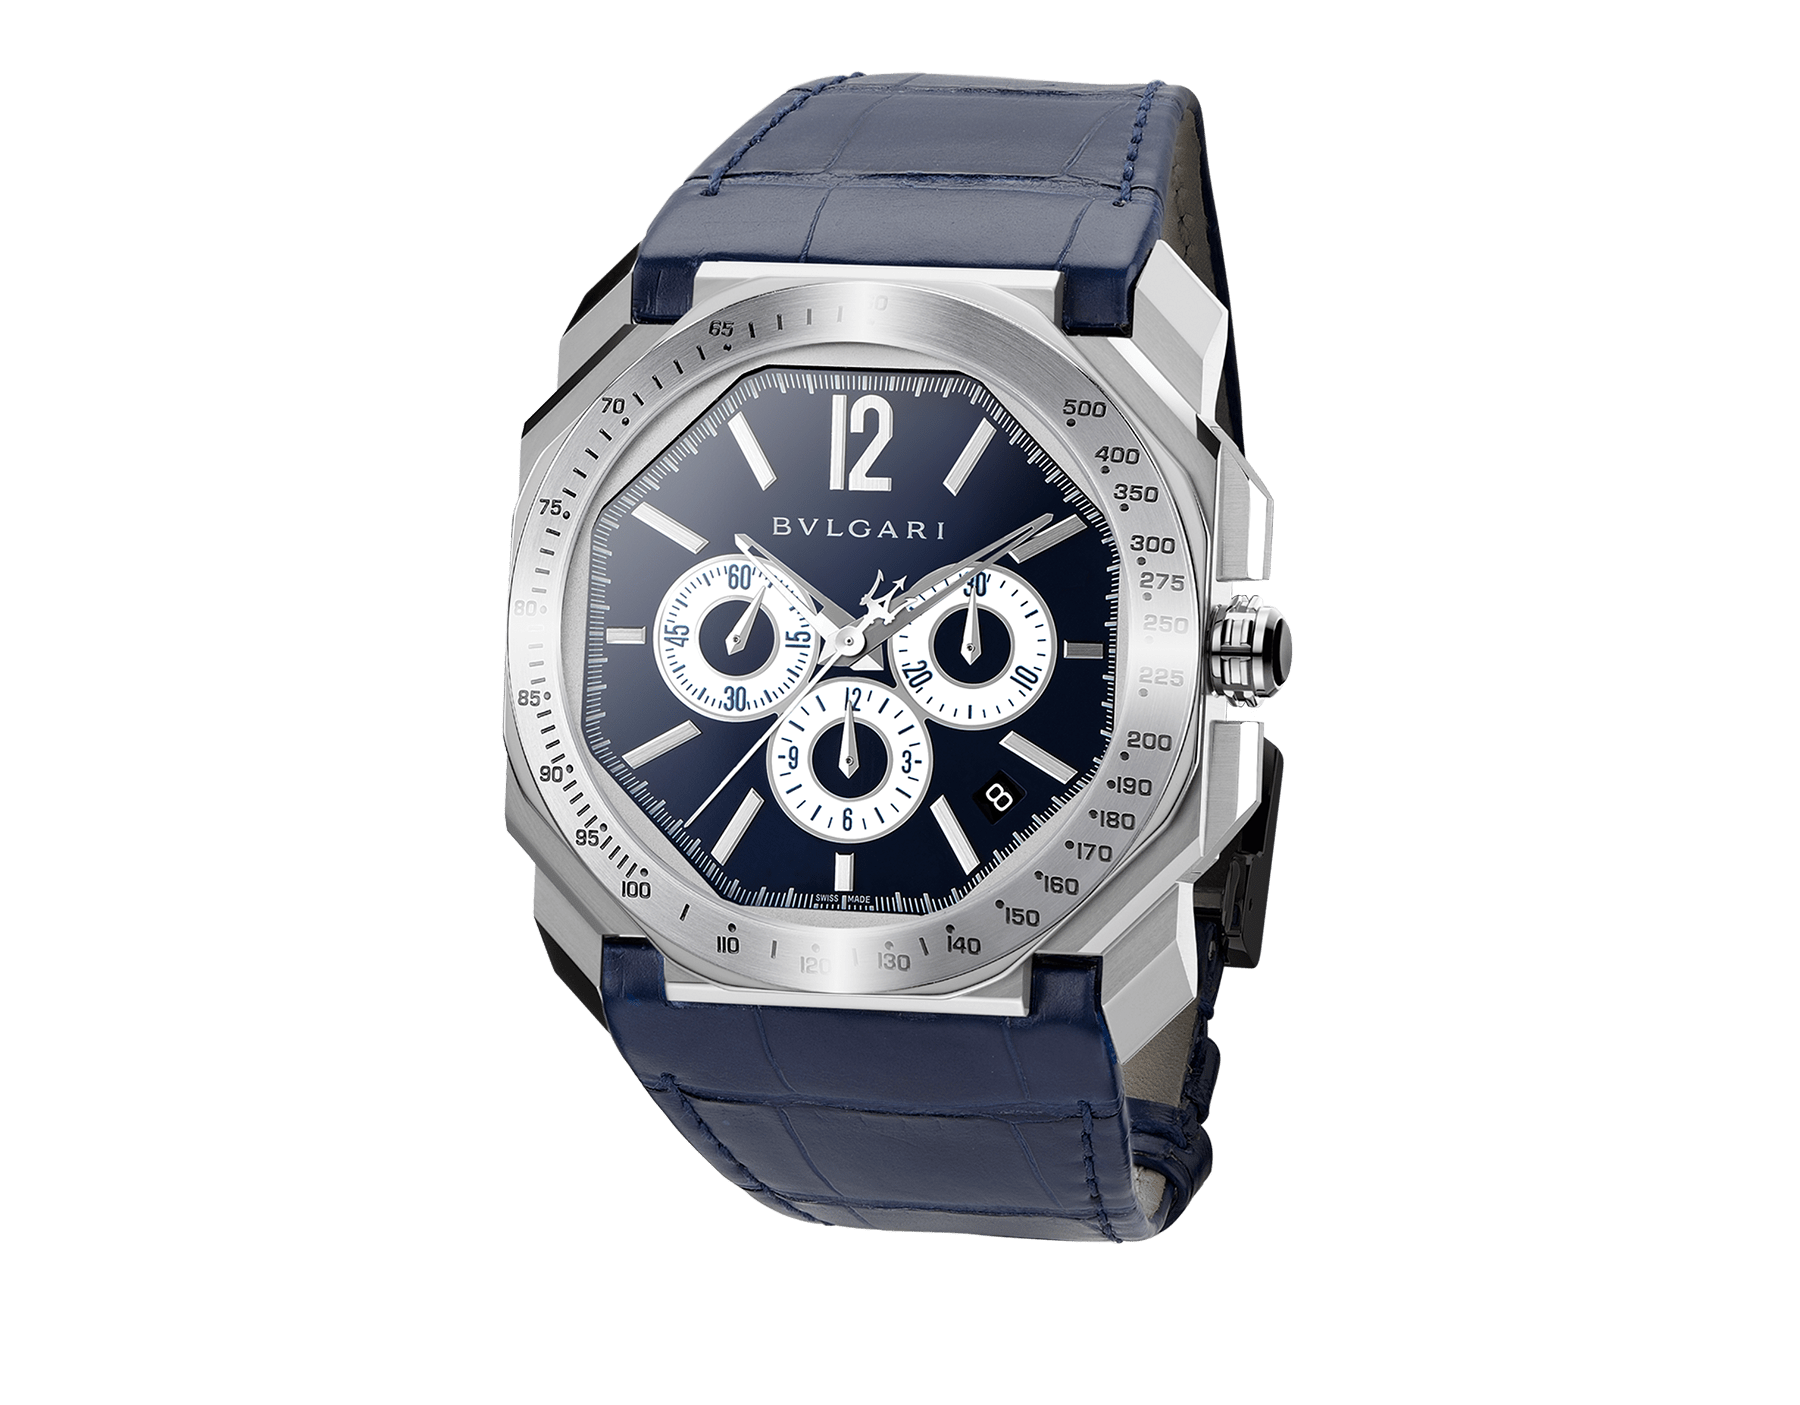 Octo Maserati Chronograph Limited Edition watch with mechanical manufacture movement, high-frequency chronograph, column wheel mechanism, automatic winding and date, stainless steel case, tachometric bezel, blue lacquered dial and blue alligator bracelet. 102229 image 1